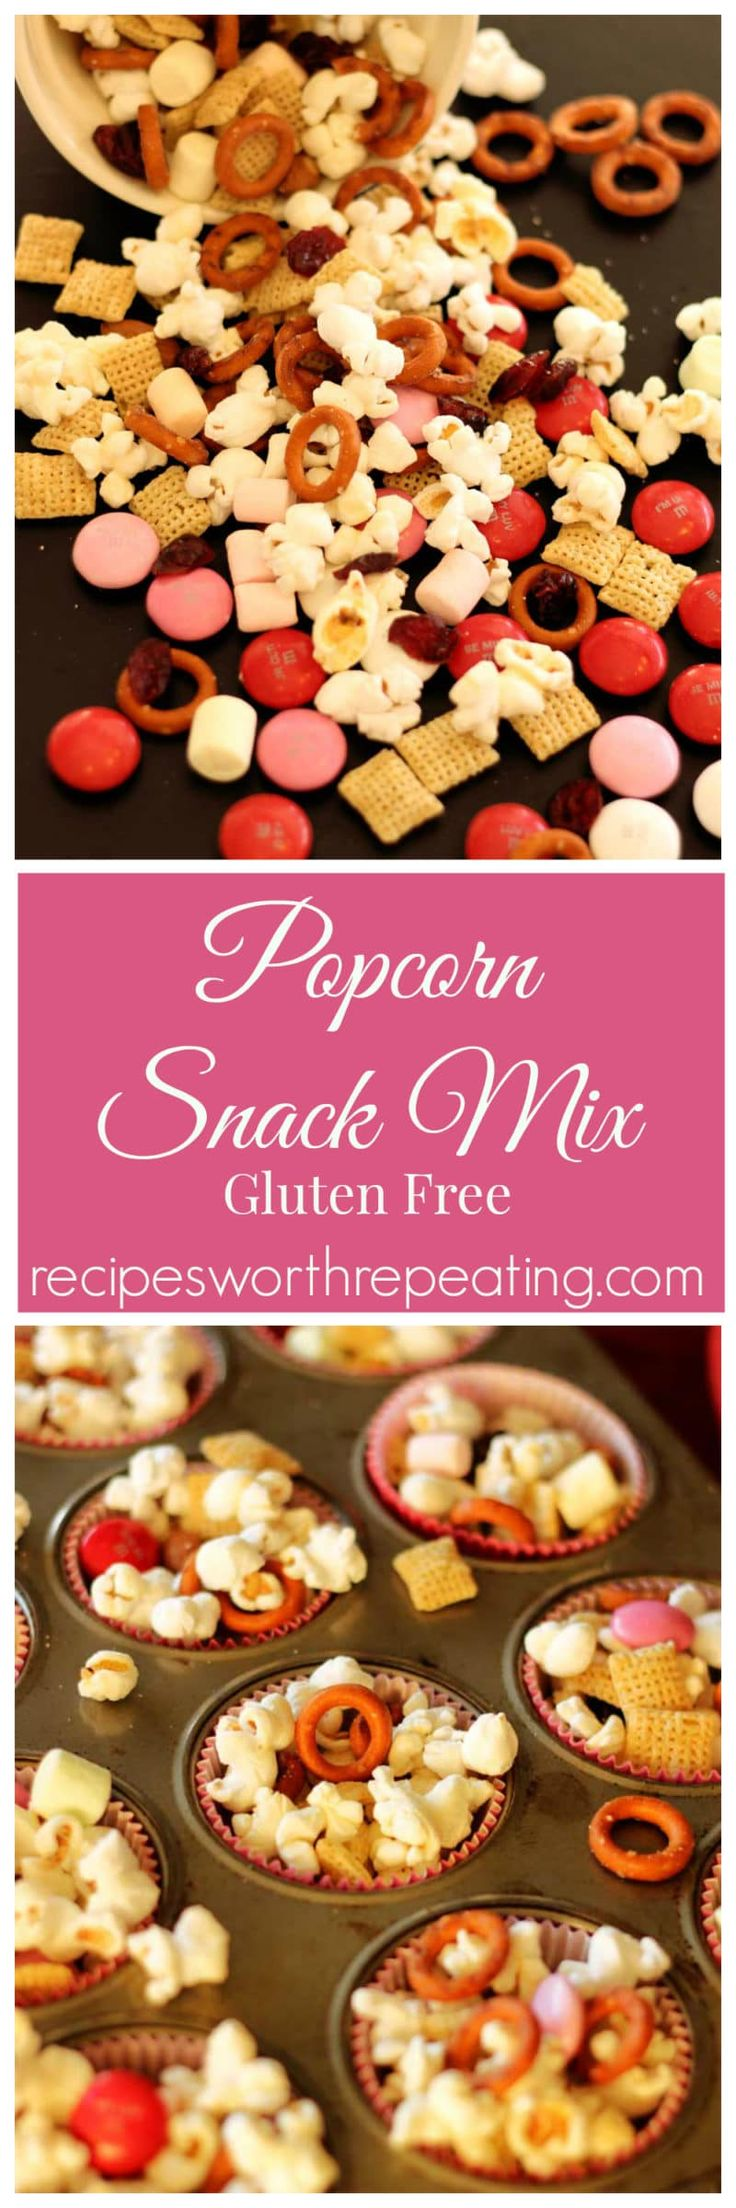 Popcorn Snack Mix + Giveaway | Recipes Worth Repeating | Snacks | Popcorn | Gluten Free | Snack Mix